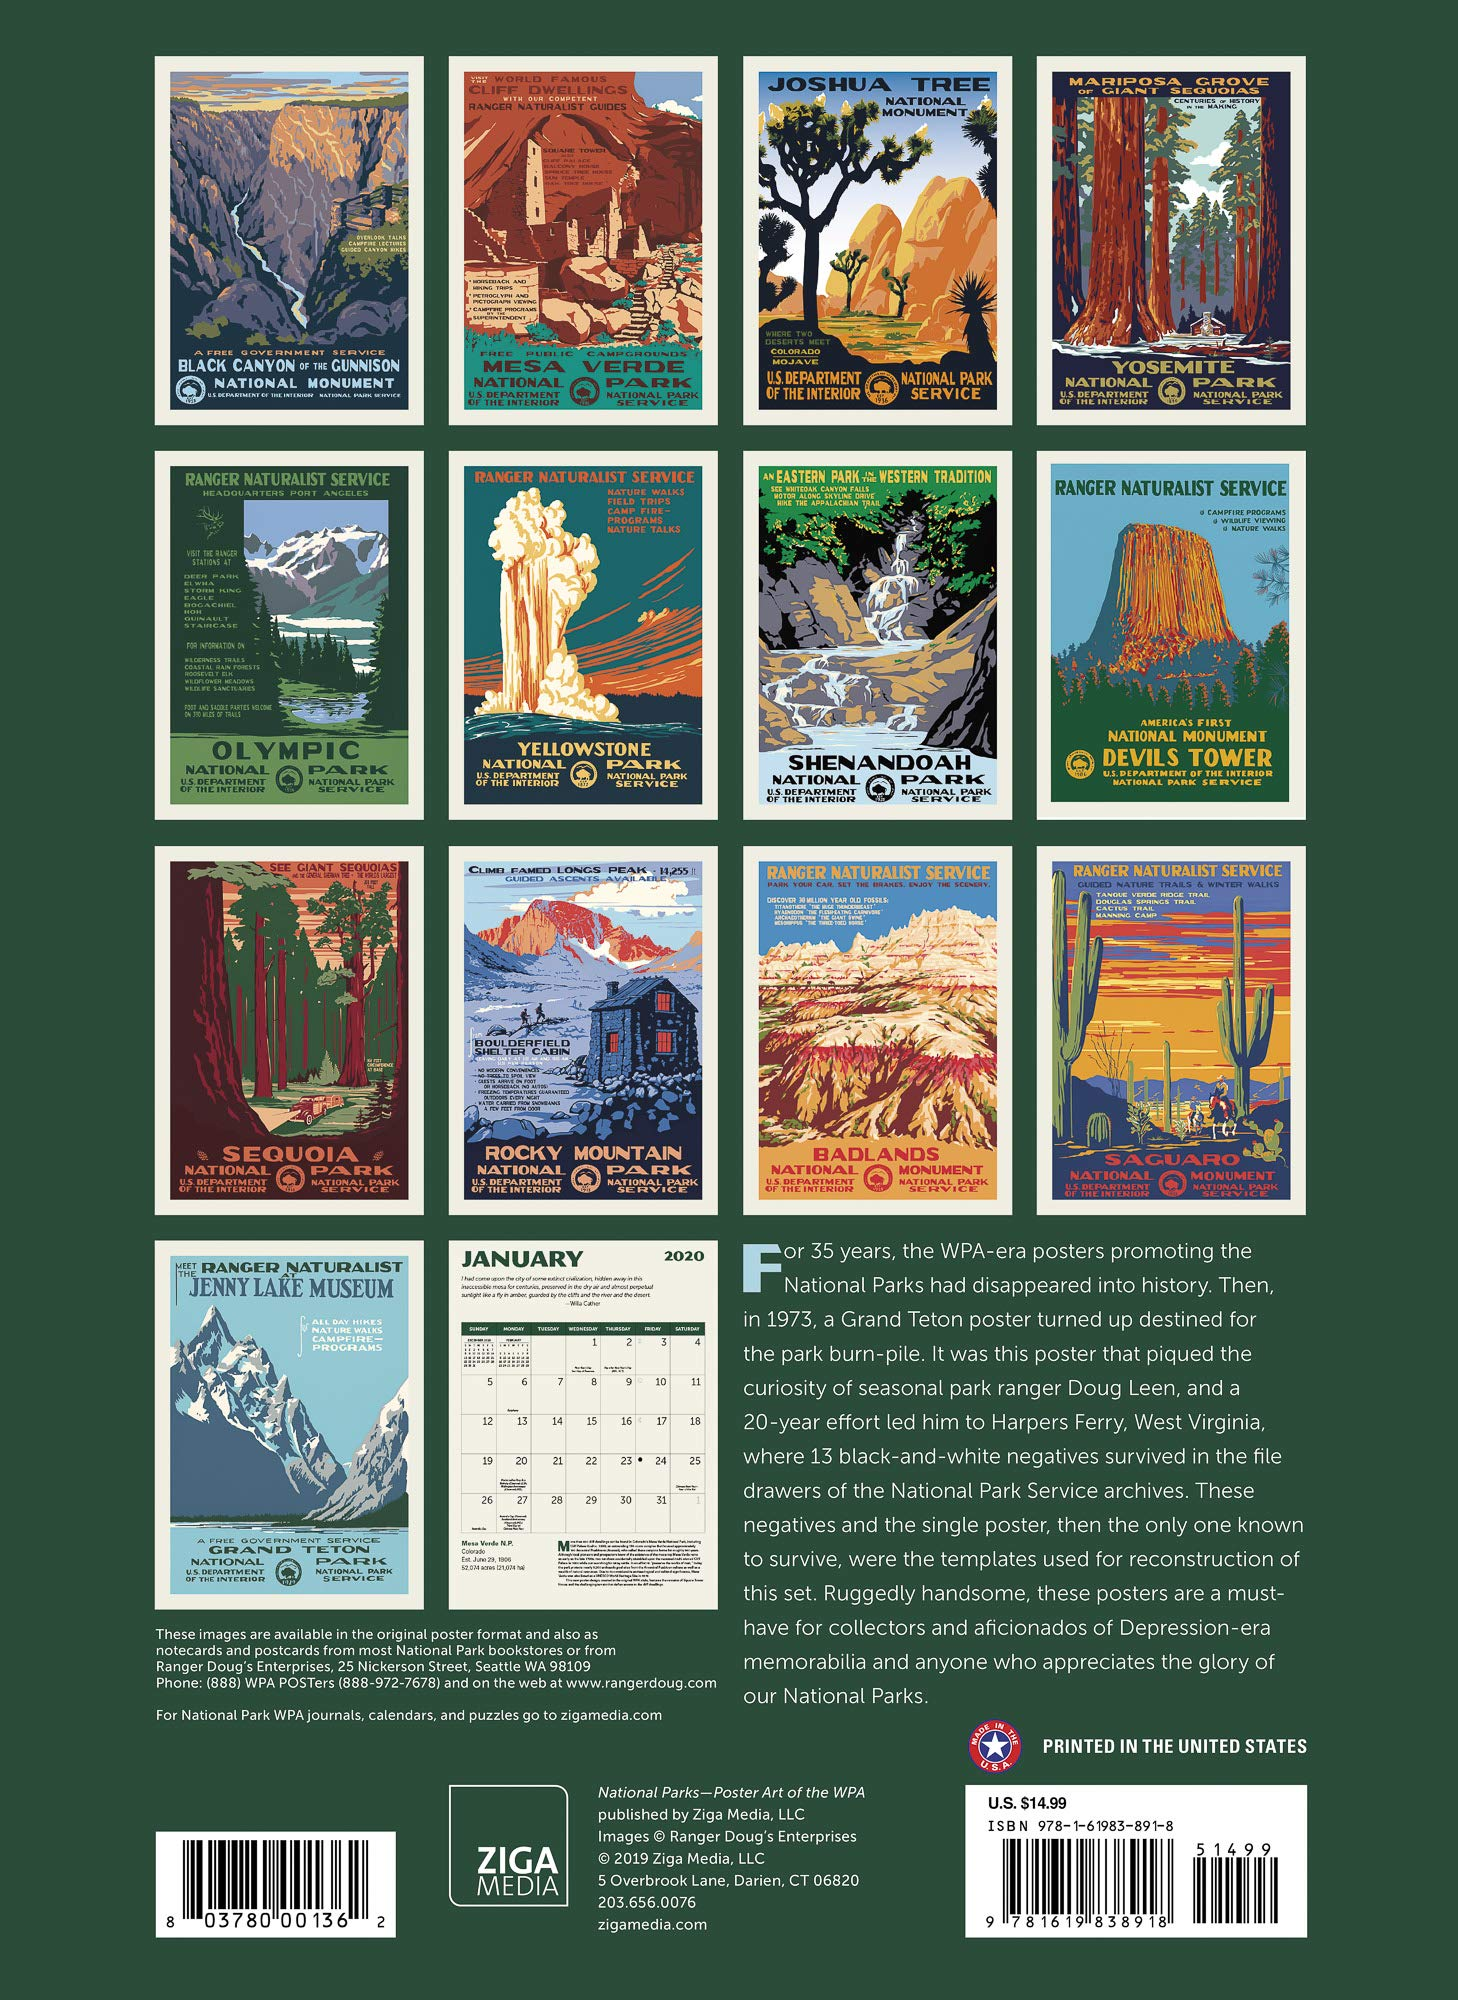 National Parks Posters Wpa Calendar Wall Calendar 2020 Monthly January December 8 75 X 12 Home Decor Calendars Planners Personal Organizers Wall Calendars